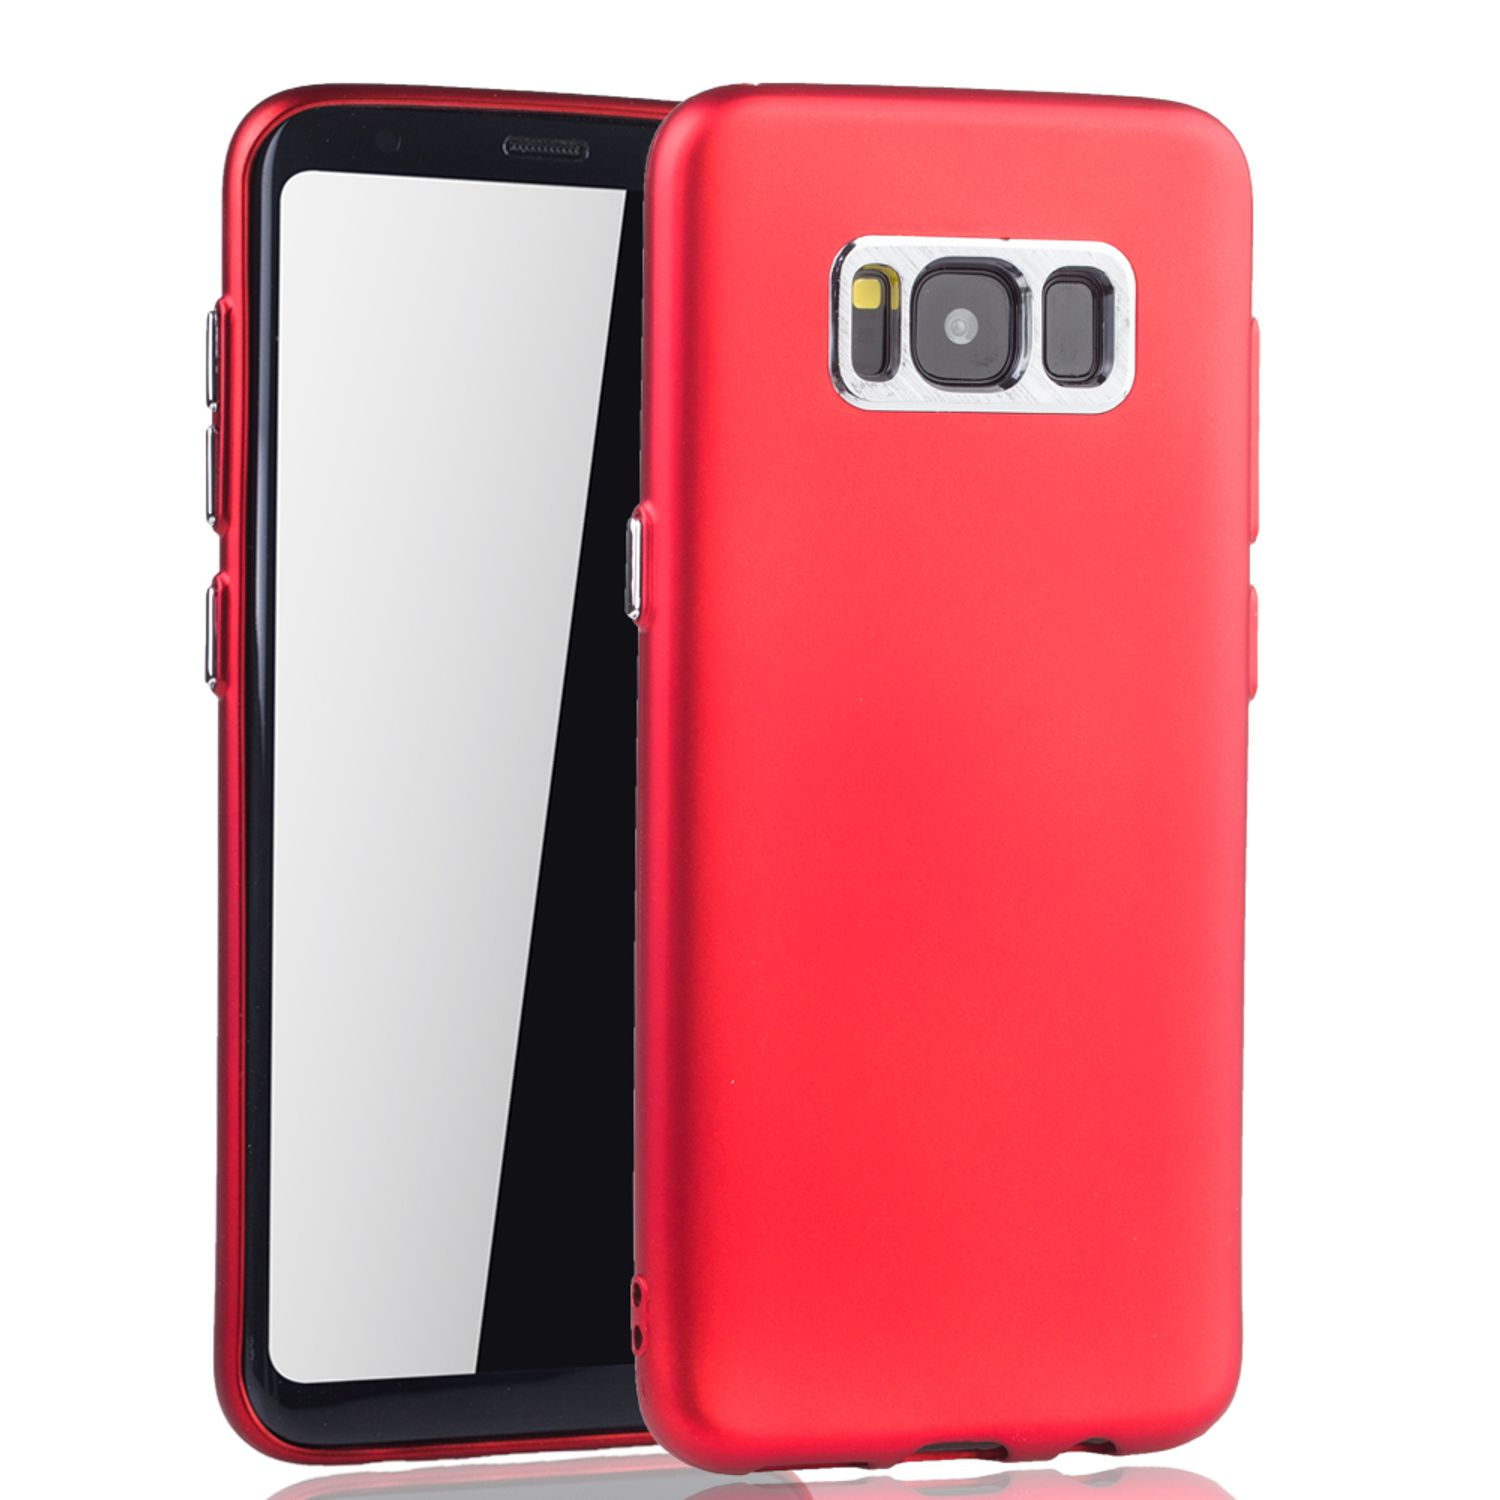 samsung galaxy s8 plus h lle handyh lle f r samsung galaxy s8 plus handy case in rot. Black Bedroom Furniture Sets. Home Design Ideas